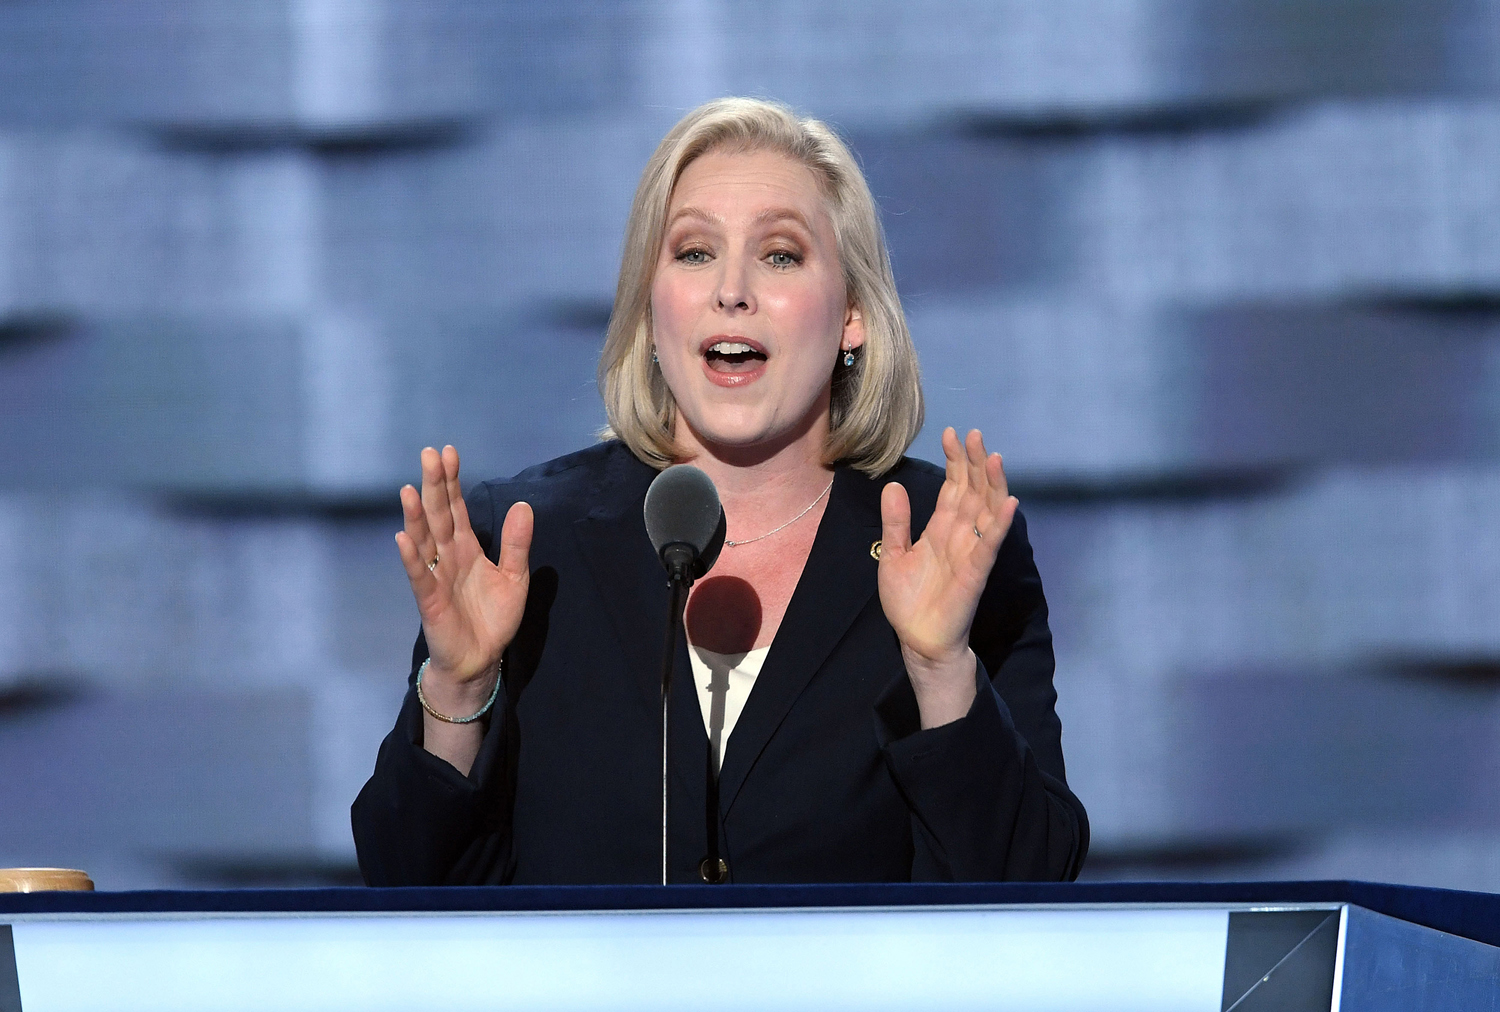 New York Sen. Kirsten Gillibrand speaks during the first day of the Democratic National Convention on July 25, 2016, in Philadelphia.